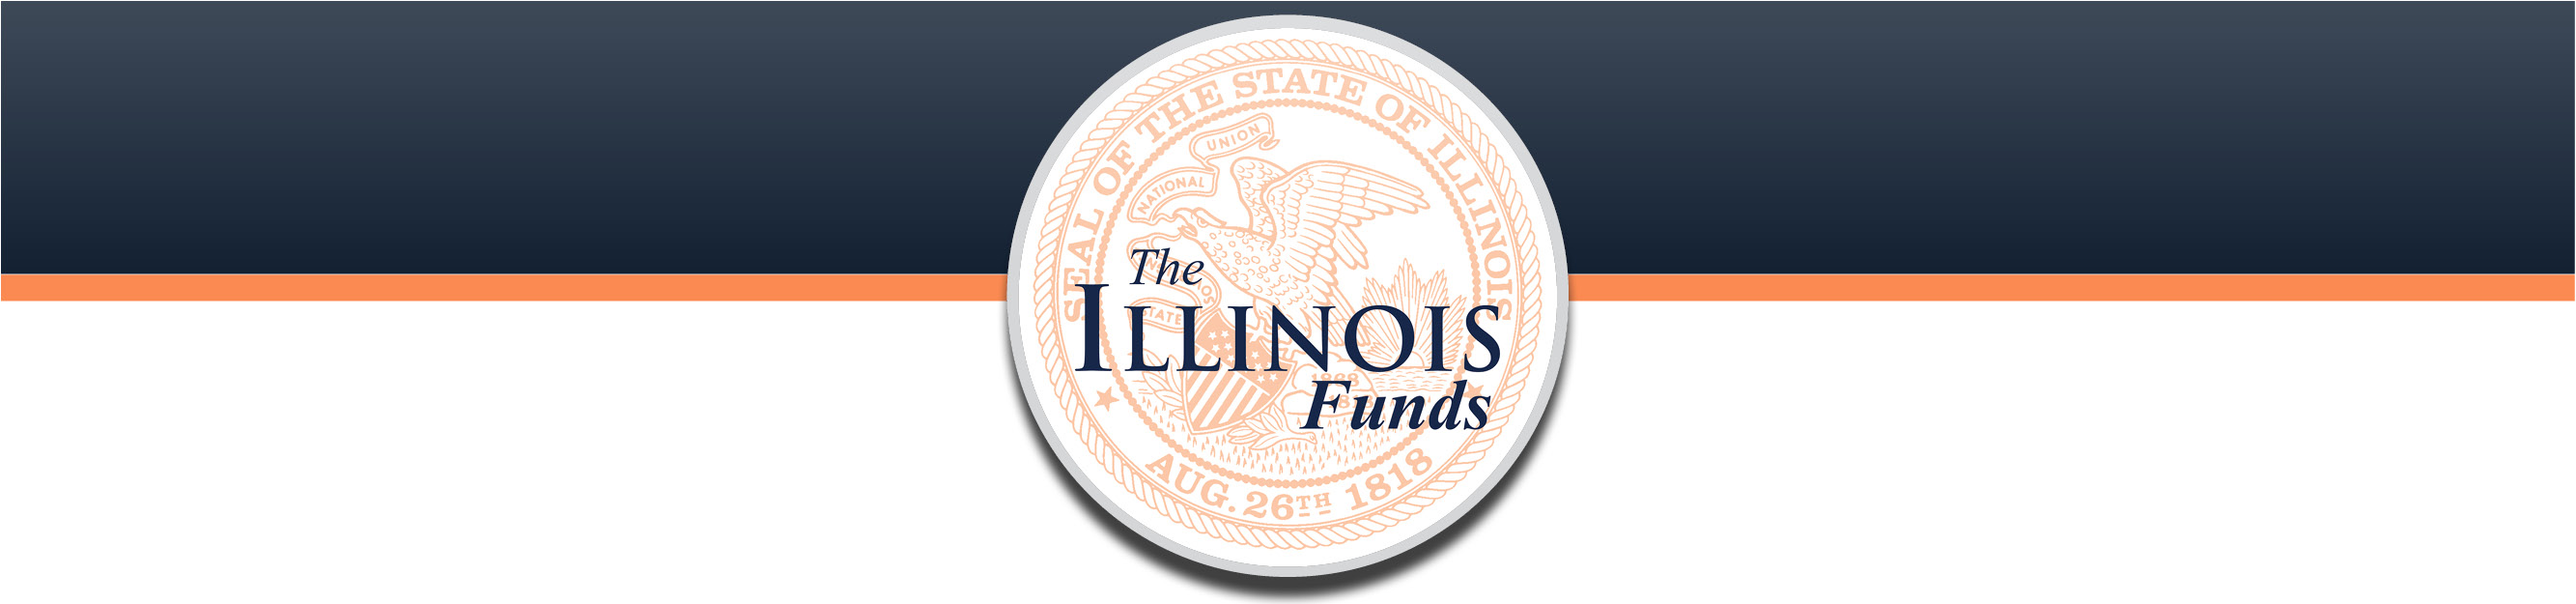 Illinois Funds Banner Image